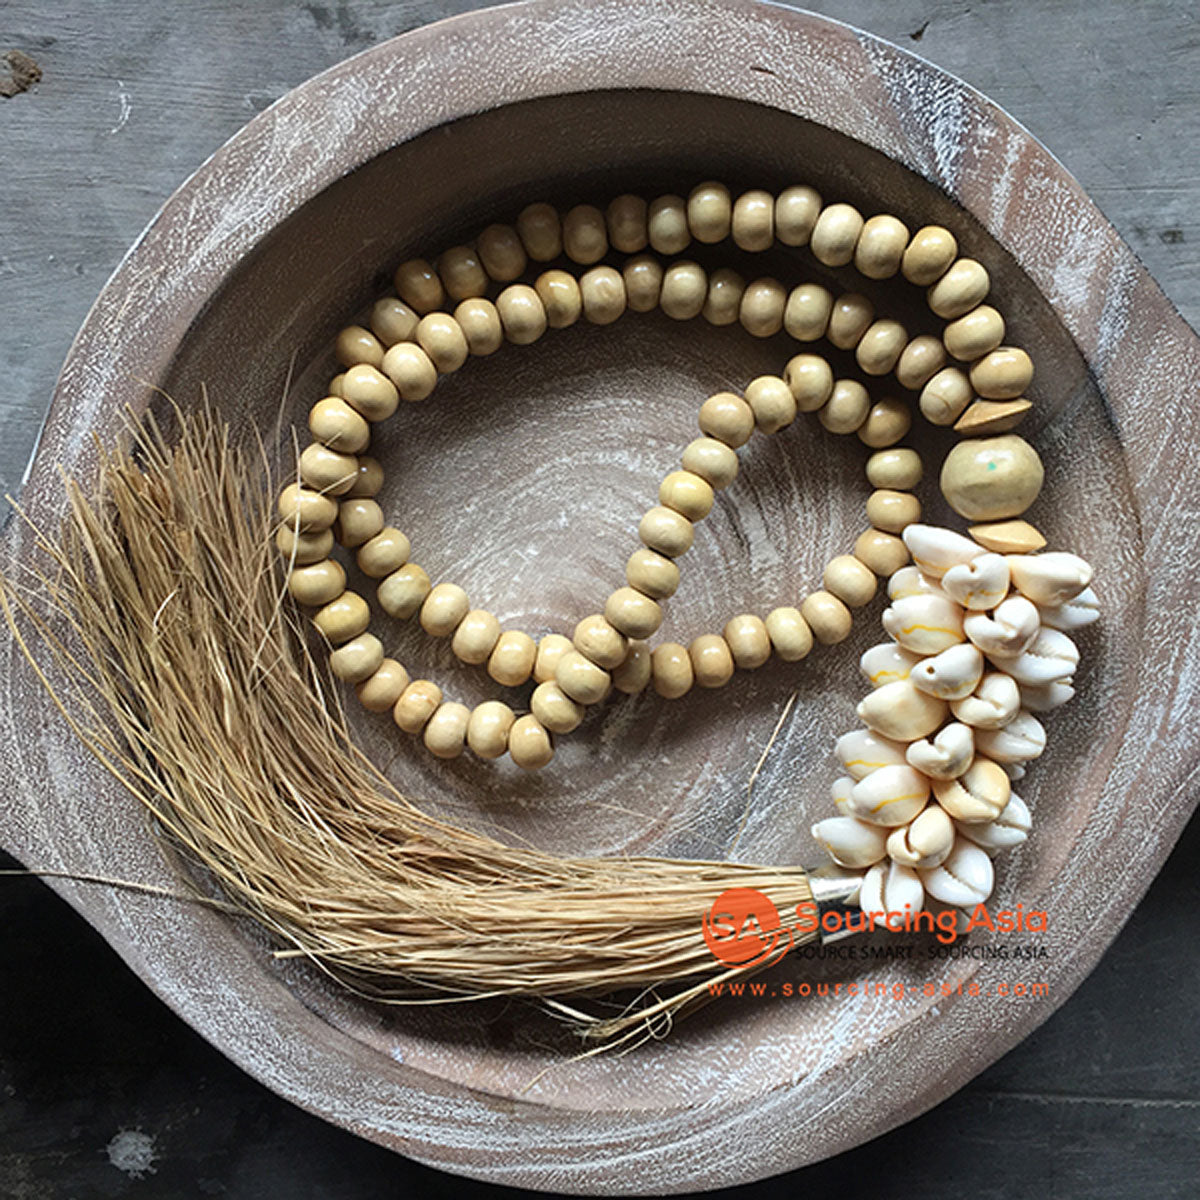 SHL047-25 NATURAL TIMBER BEADS AND COWRIE SHELL DECORATIVE TASSEL WITH RAFFIA FRINGE